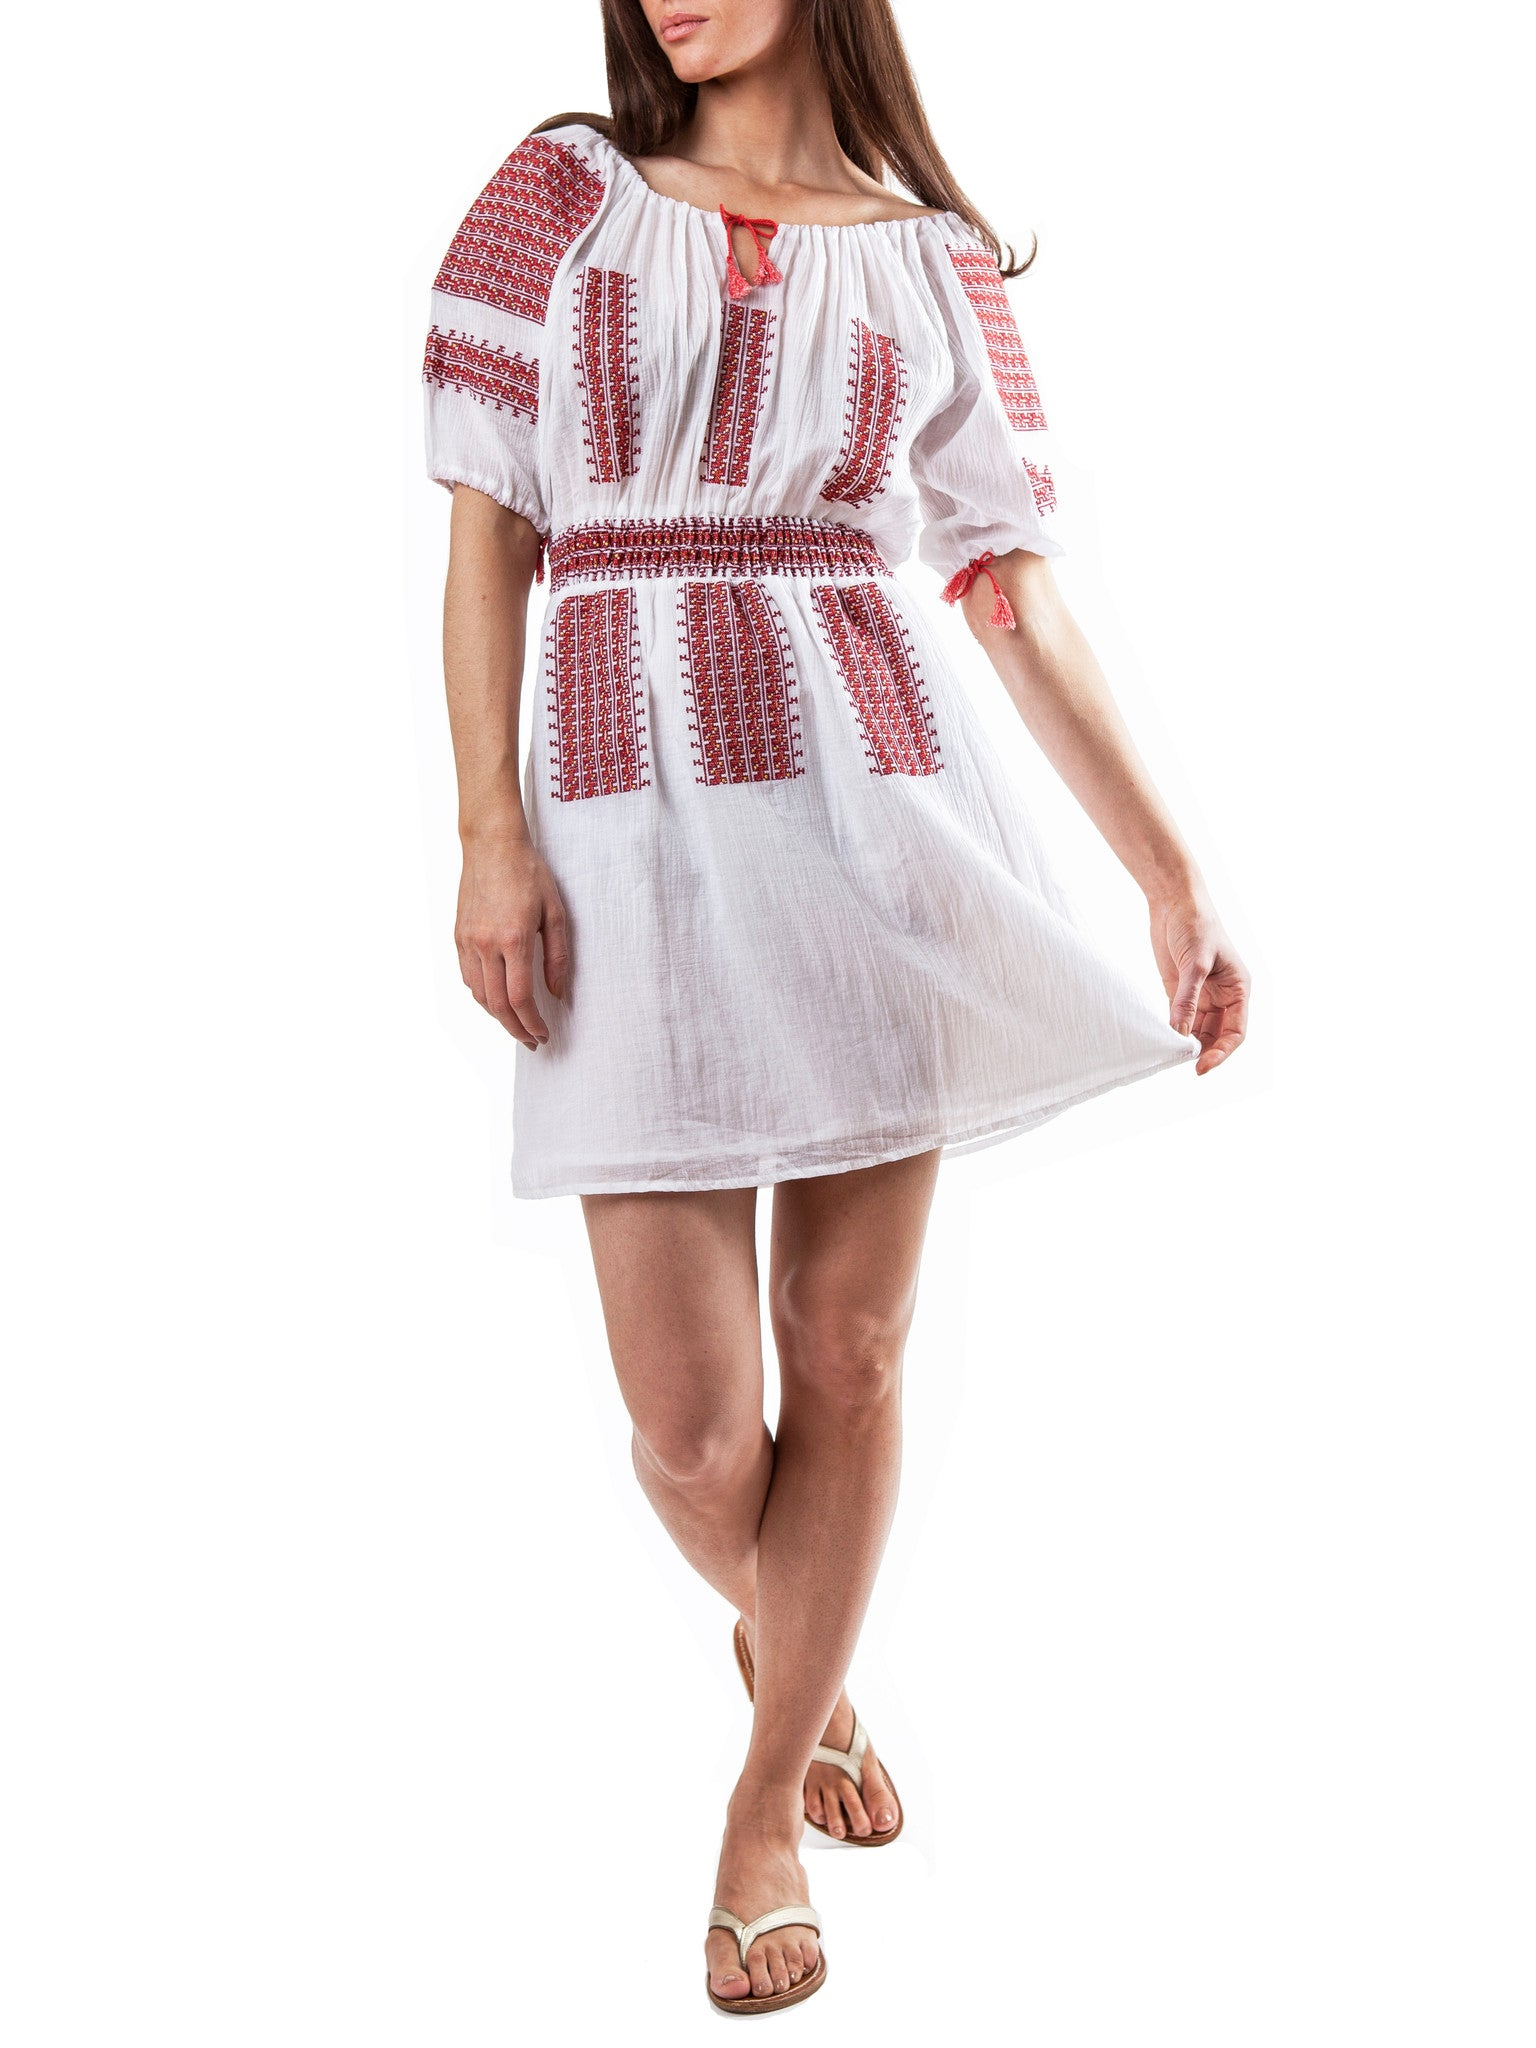 <b>White/Red embroidery dress</b><br><i>Cotton Voile</i>